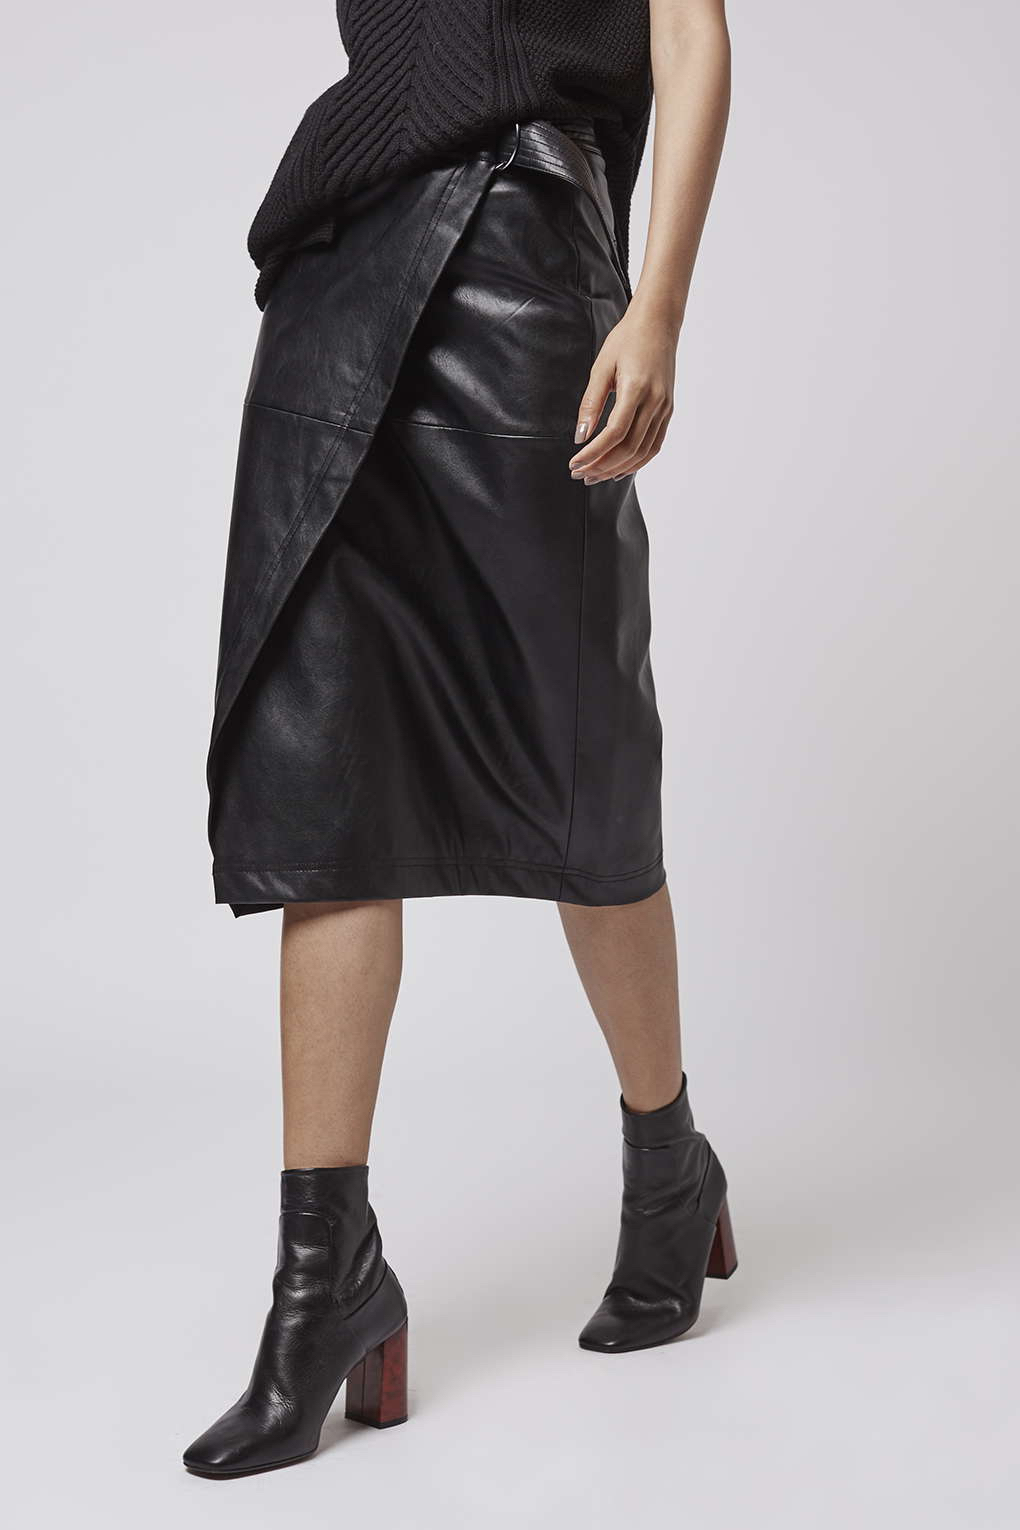 topshop-pleather-wrap-skirt